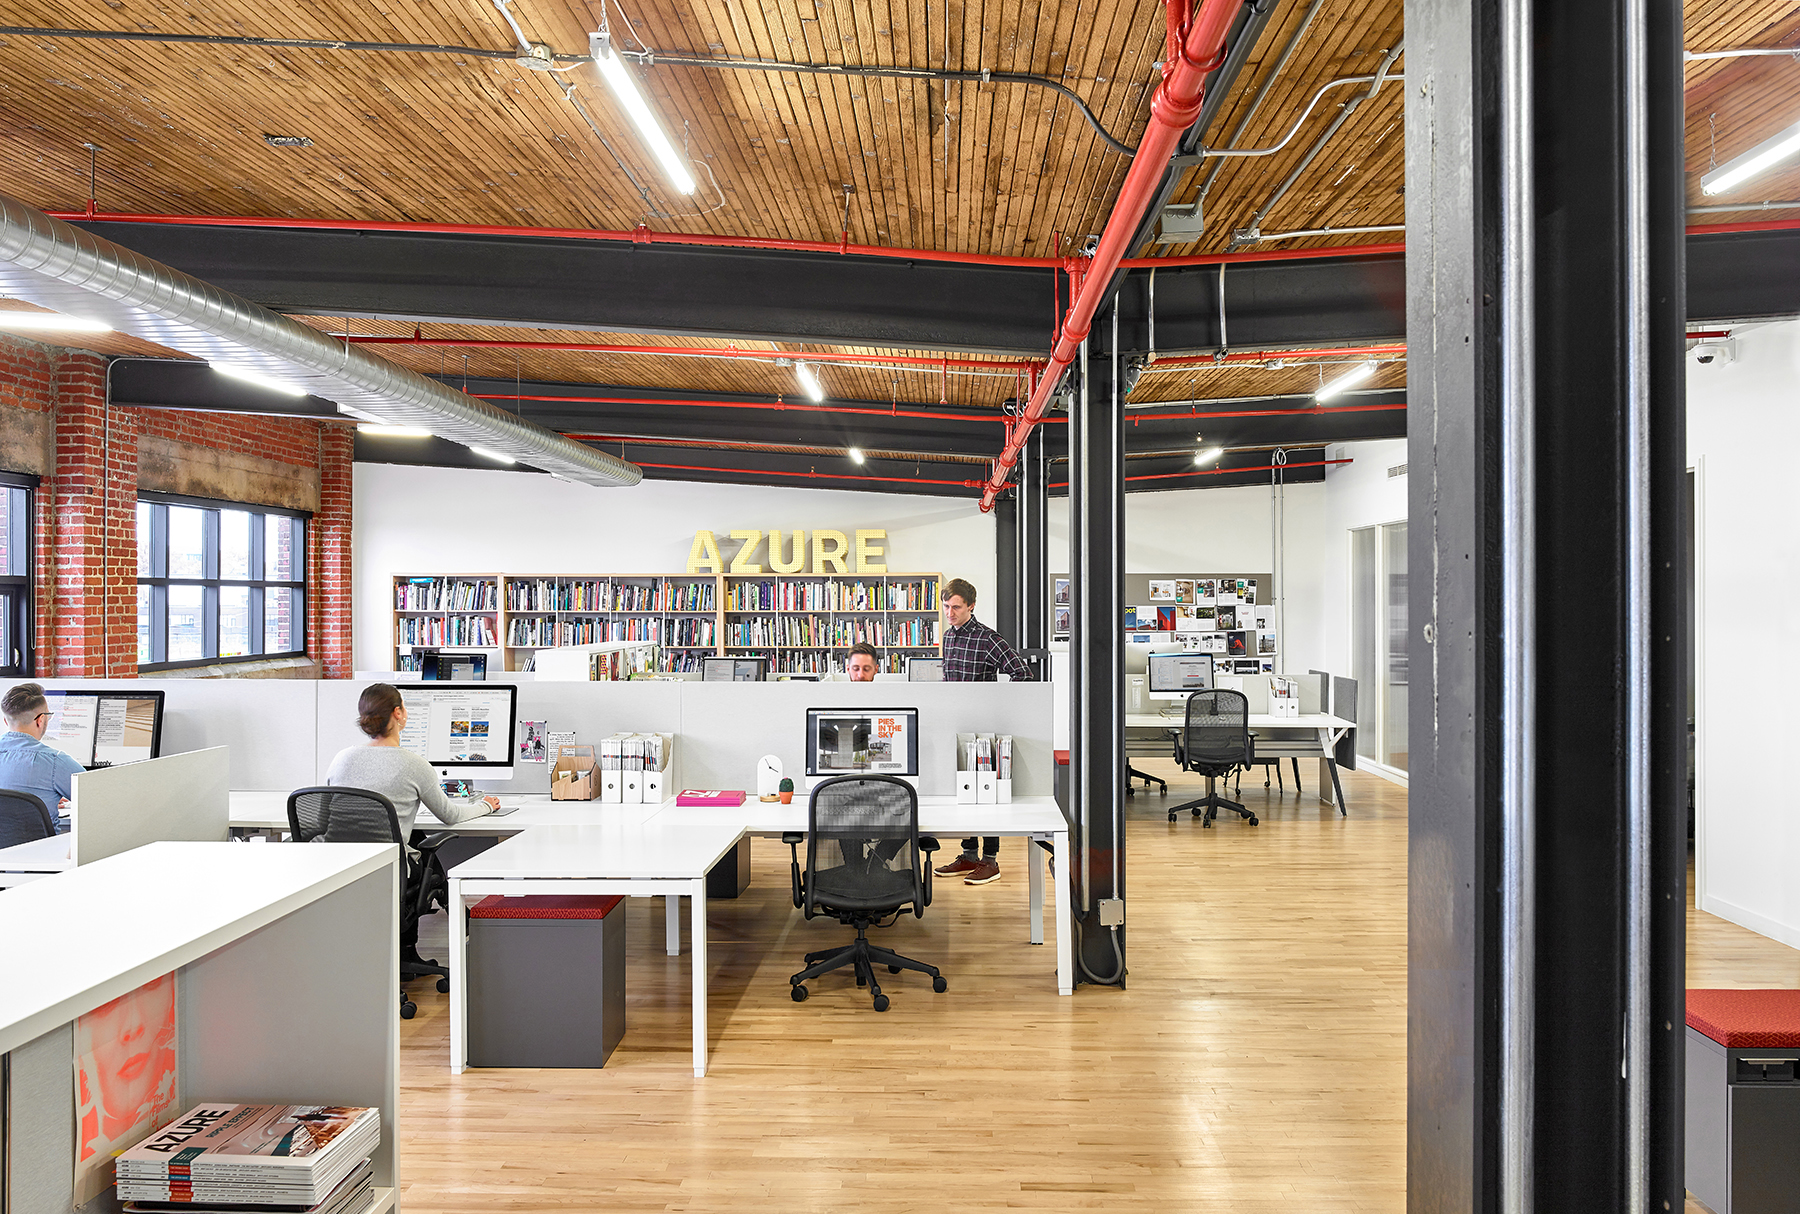 A Tour of Azure Publishing's New Toronto Headquarters